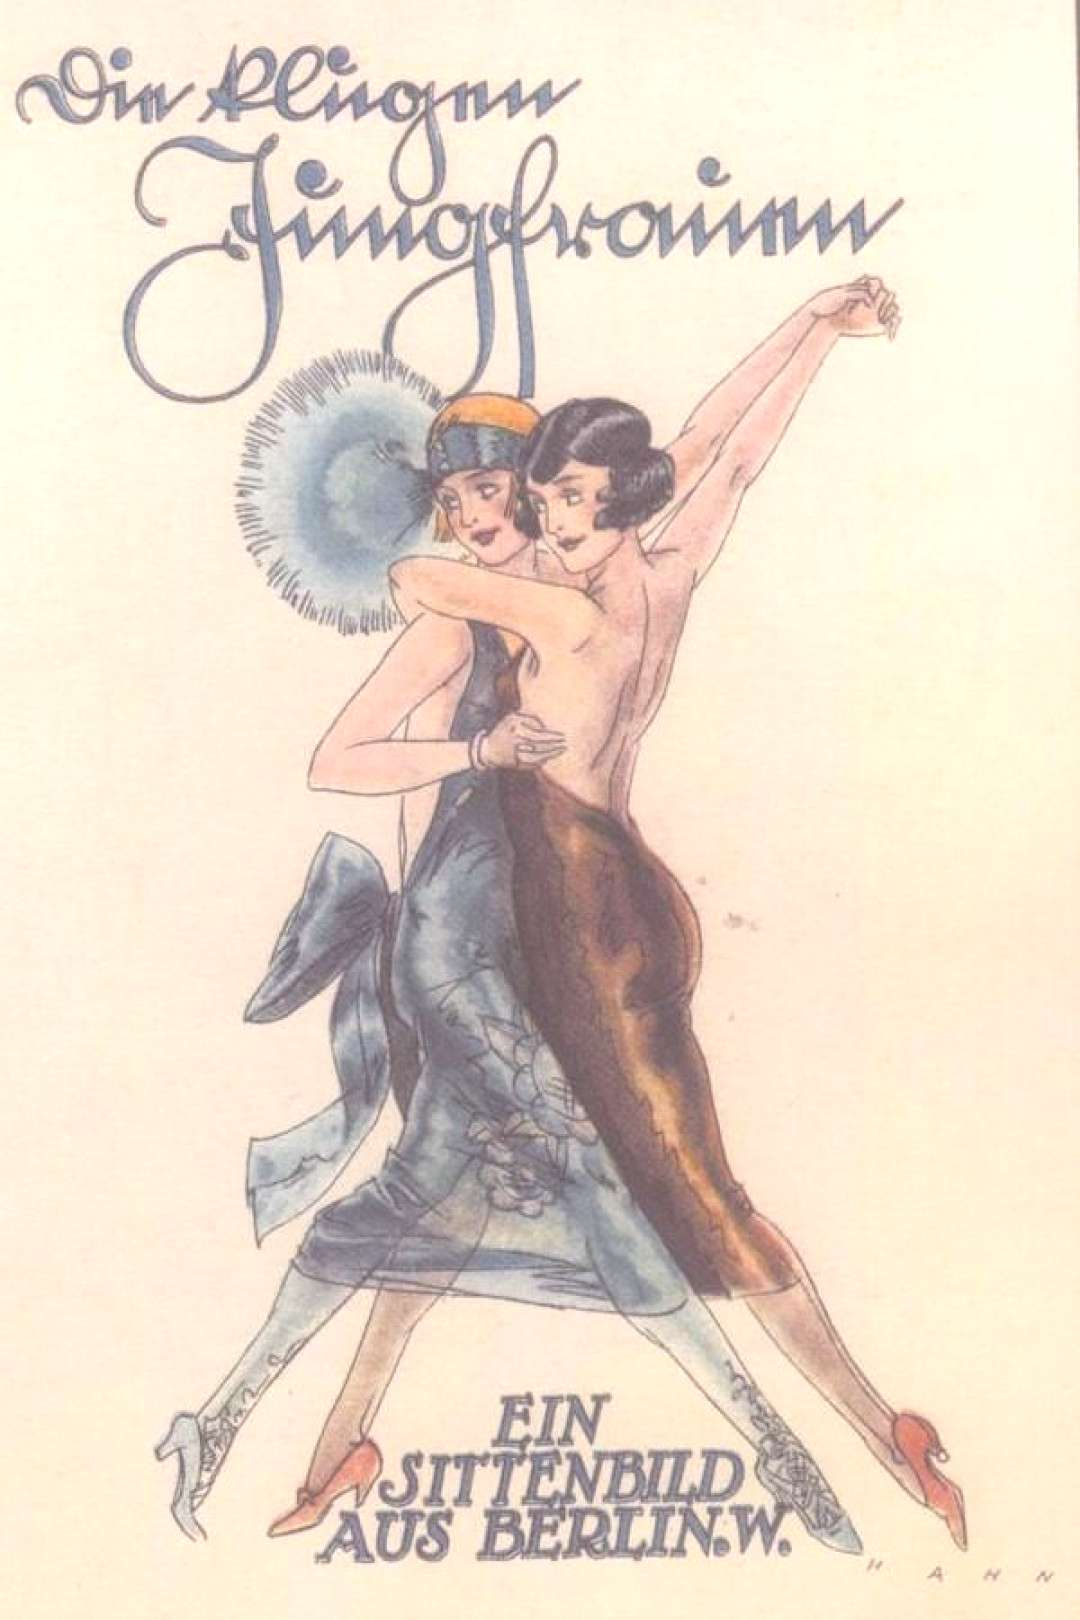 1920s German Cabaret Poster. Cabaret defined the period in Berlin in many remembrances